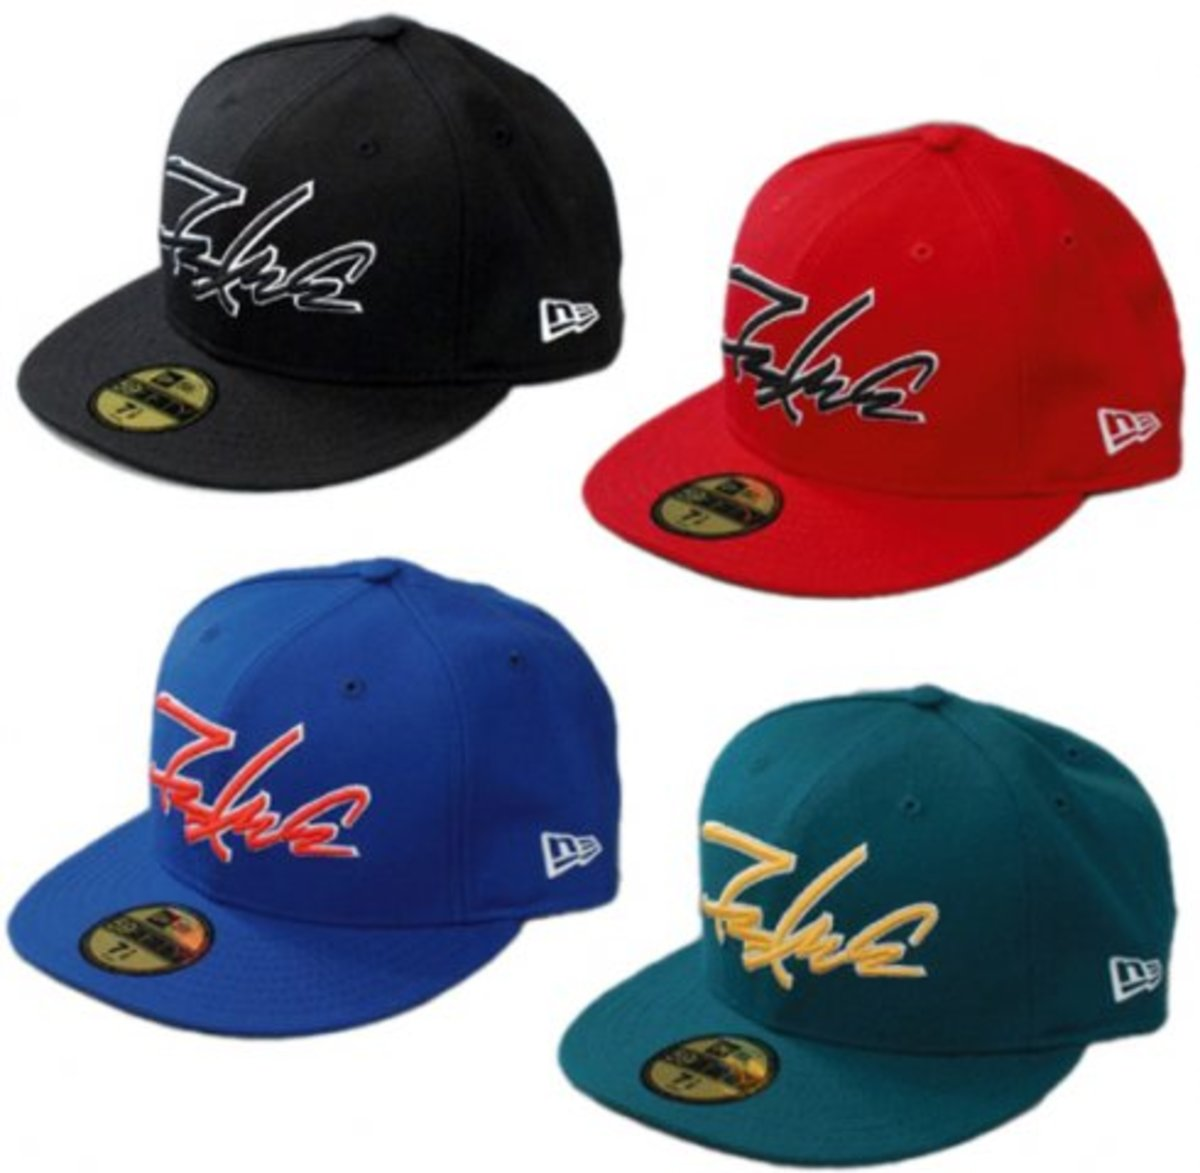 FUTURA LABORATORIES x New Era - FUTURA Signature